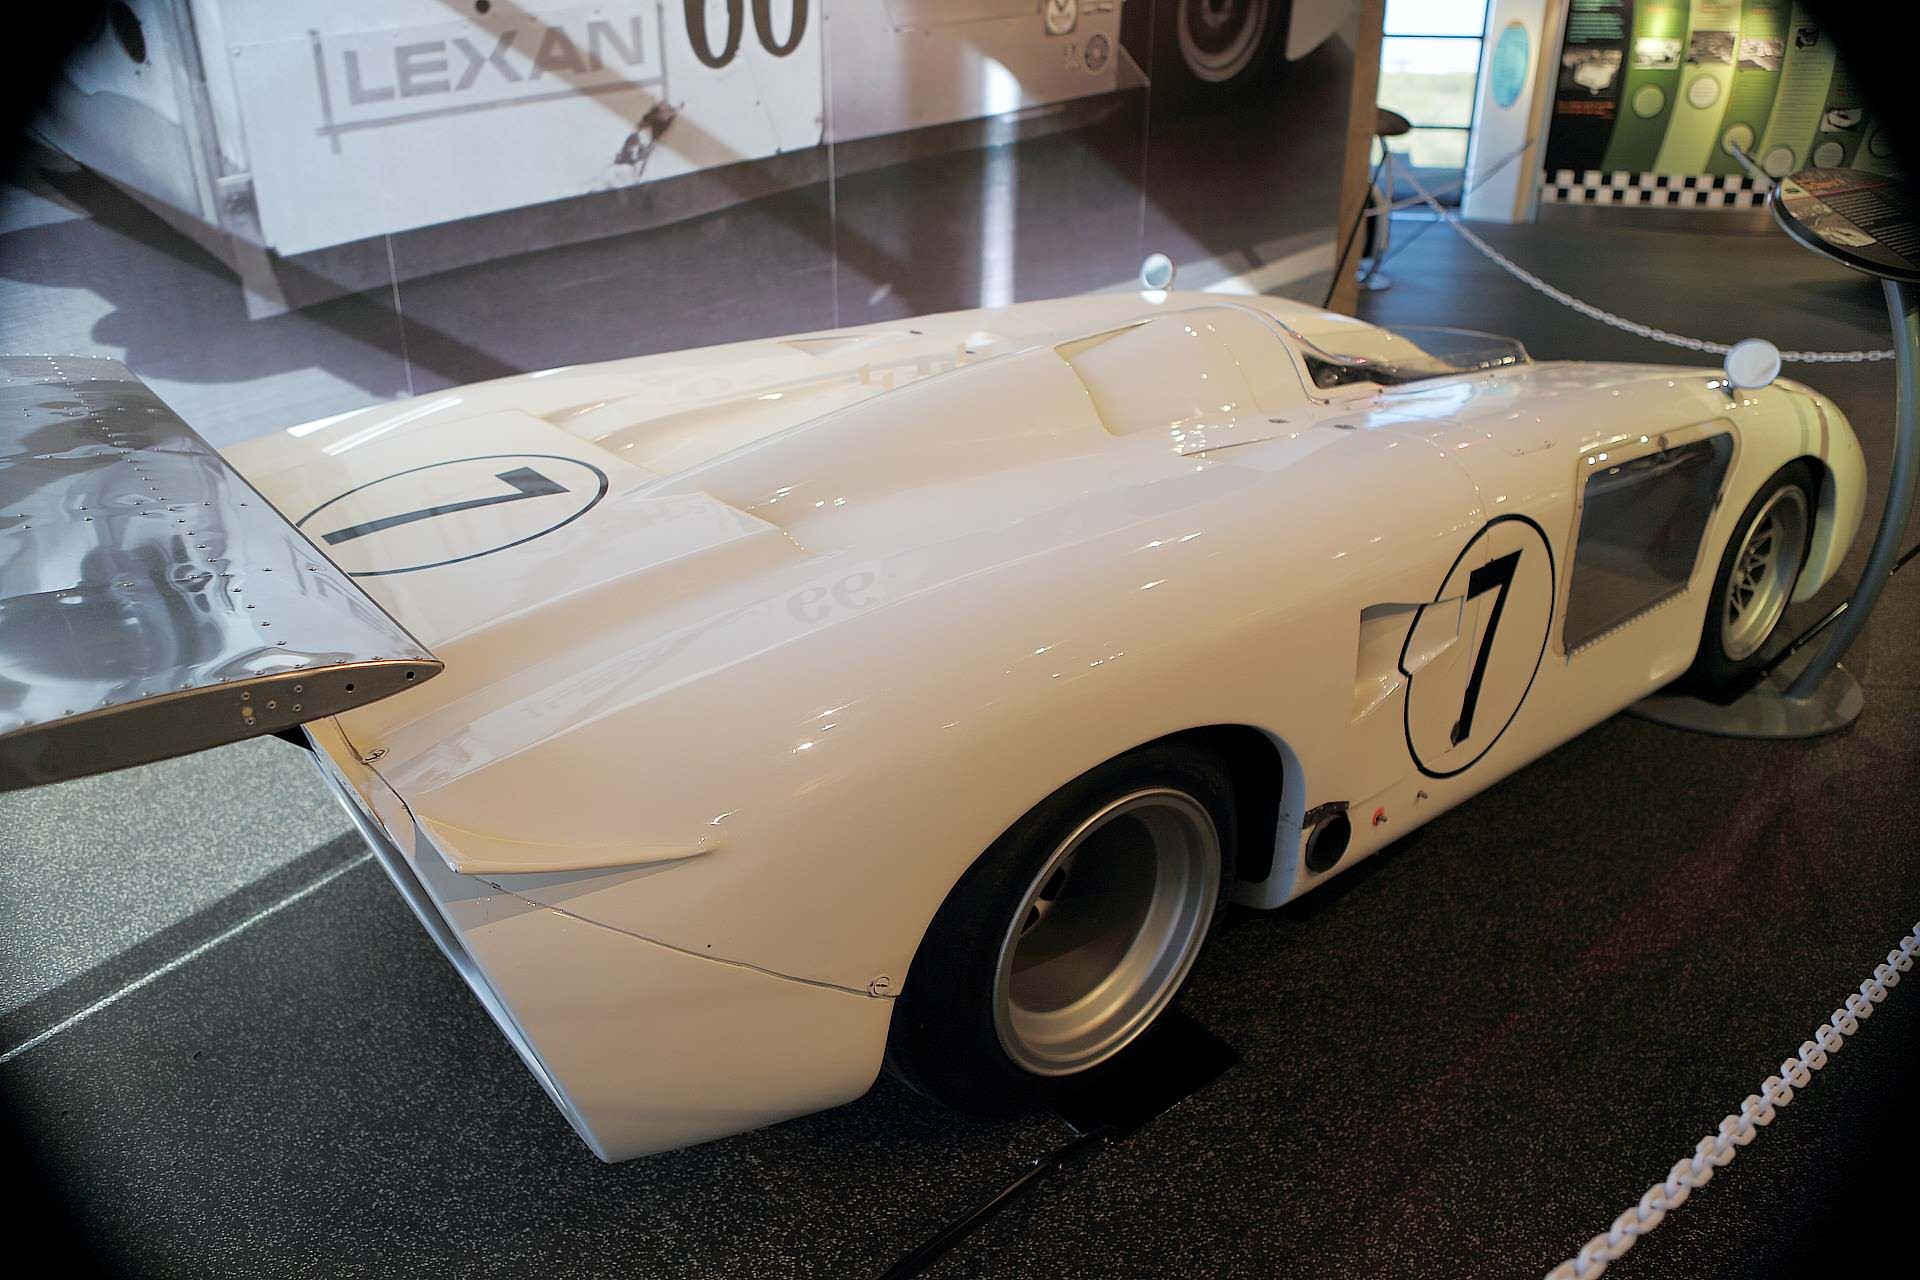 see the authentic chaparral h and j racecars at the petroleum see the authentic chaparral 2h and 2j racecars at the petroleum museum in midland texas